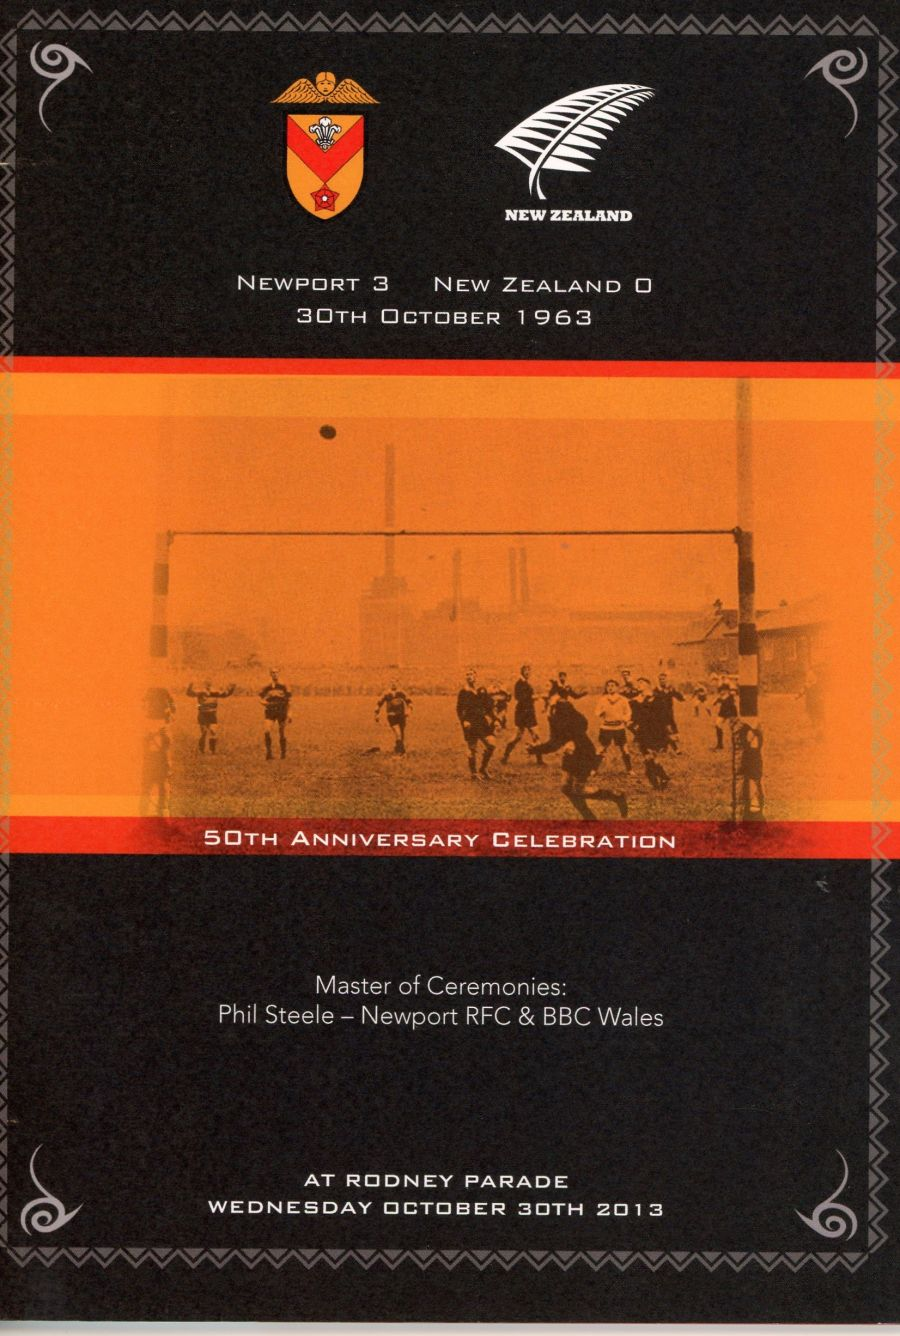 Booklet - Newport v New Zealand 1963 Golden Anniversary Dinner